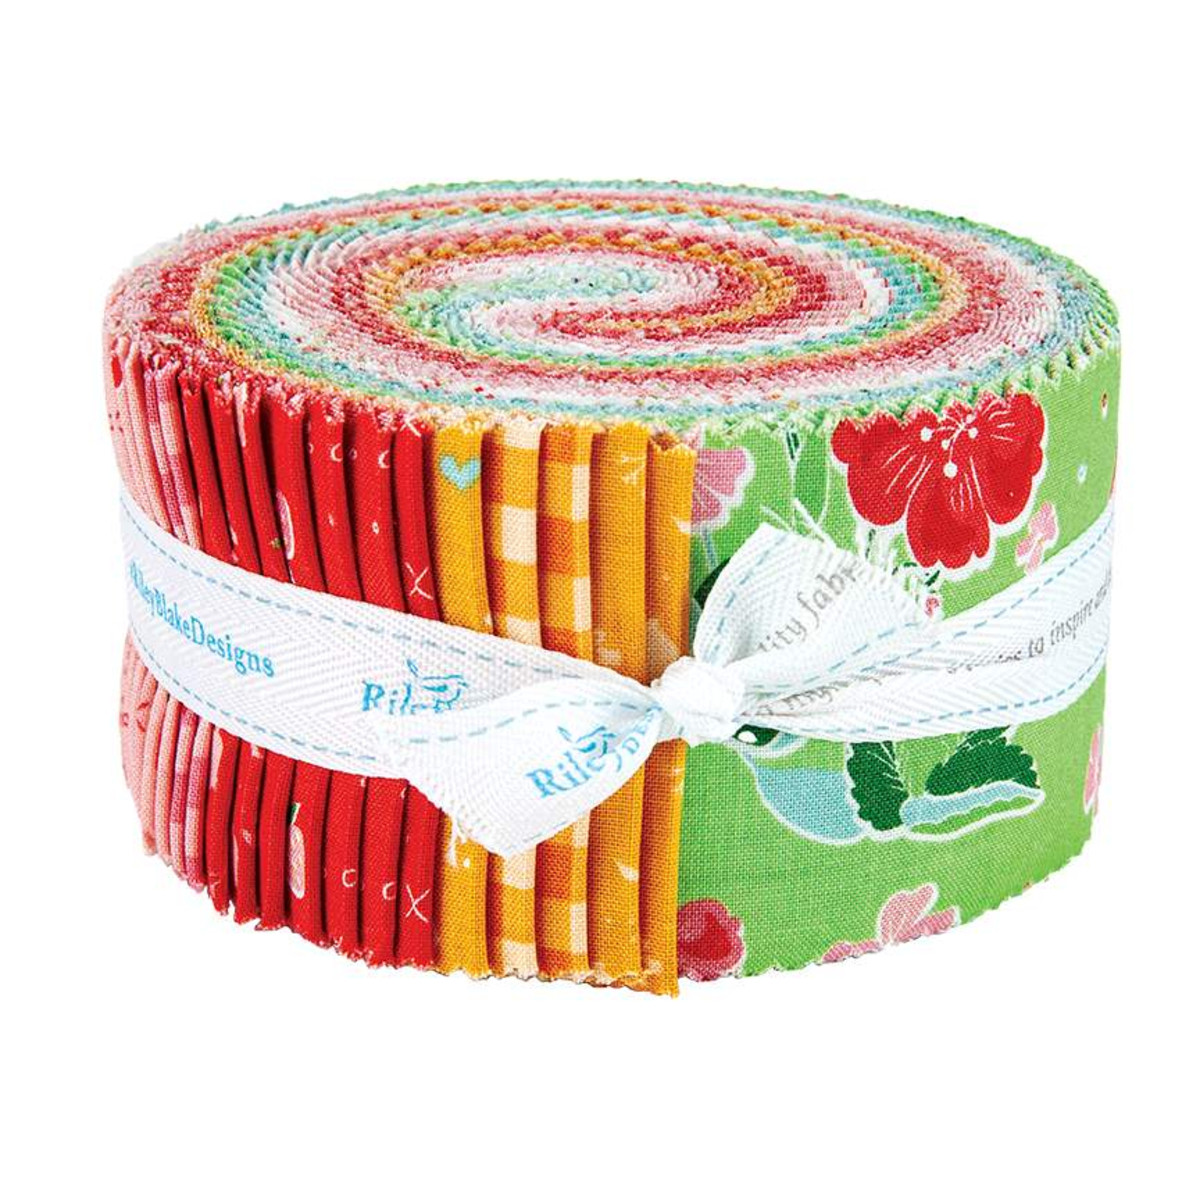 Riley Blake Jelly Roll - Strawberry Honey by Gracey Larson